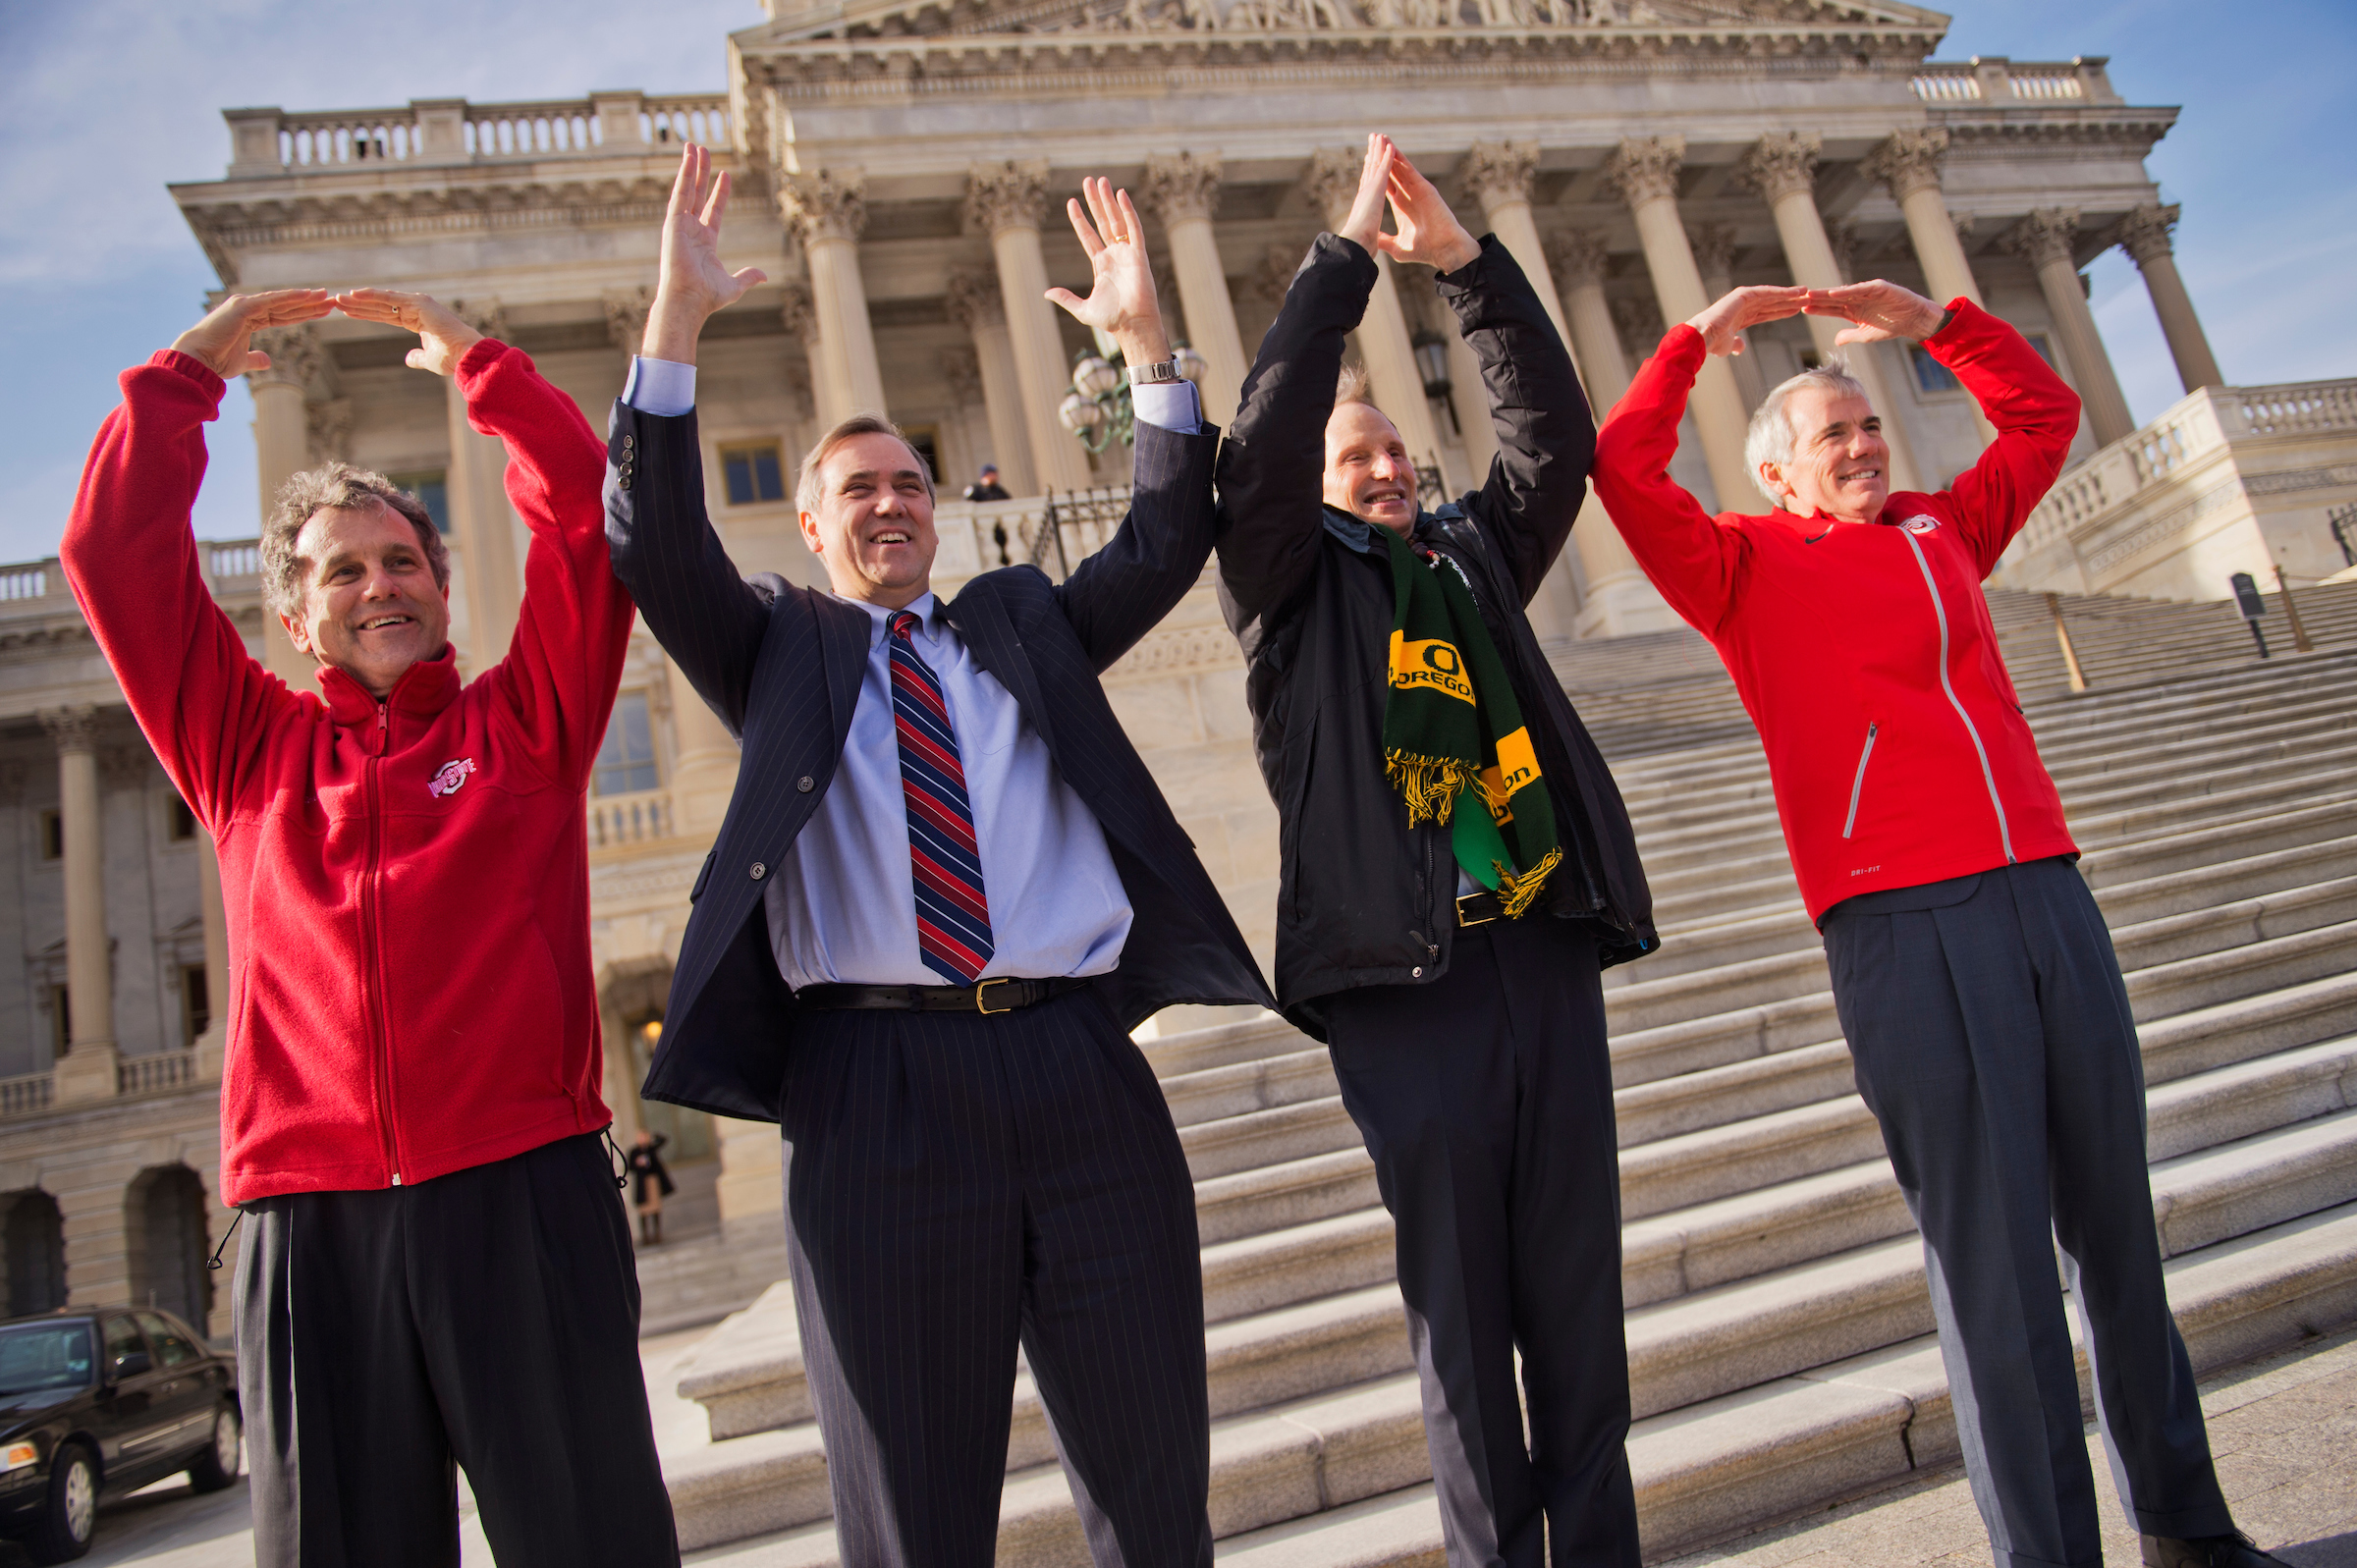 "August isn't usually for politicking. But all eyes are on the Buckeye State this weekend ahead of next week's House special election. From left, Sens. Sherrod Brown, D-Ohio, Jeff Merkley, D-Ore., Ron Wyden, D-Ore., and Rob Portman, R-Ohio, make symbols that spell ""Ohio"" at the Senate steps on Jan. 13, 2015, as part of a football bet. Ohio State beat the University of Oregon 42-20 in the national championship. (Tom Williams/CQ Roll Call file photo)"